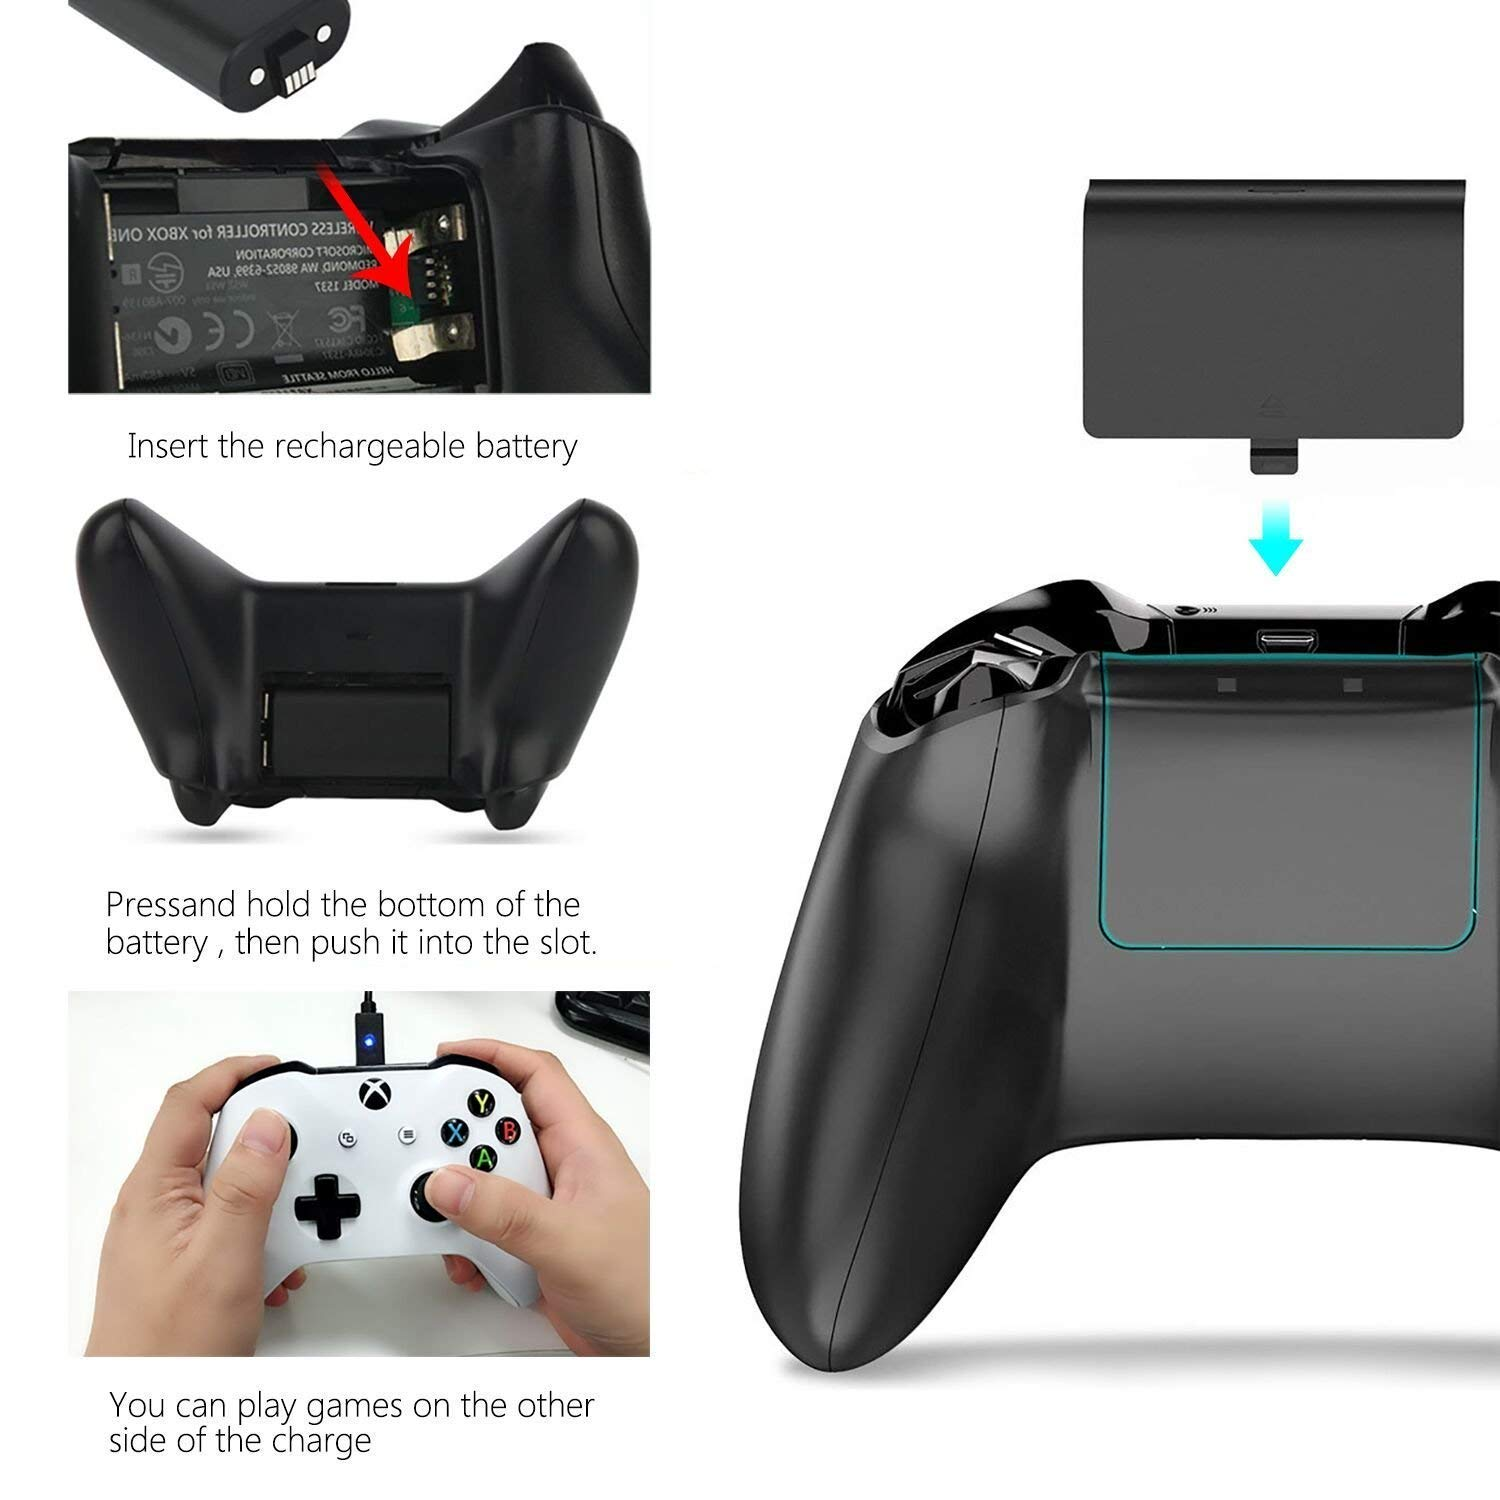 Xbox One Controller Battery Pack, Xbox One S Rechargeable Charge and Play Twin Batteries Replacement 1200mAh + 8.2ft / 2.5m Micro USB Charging Cable, Black